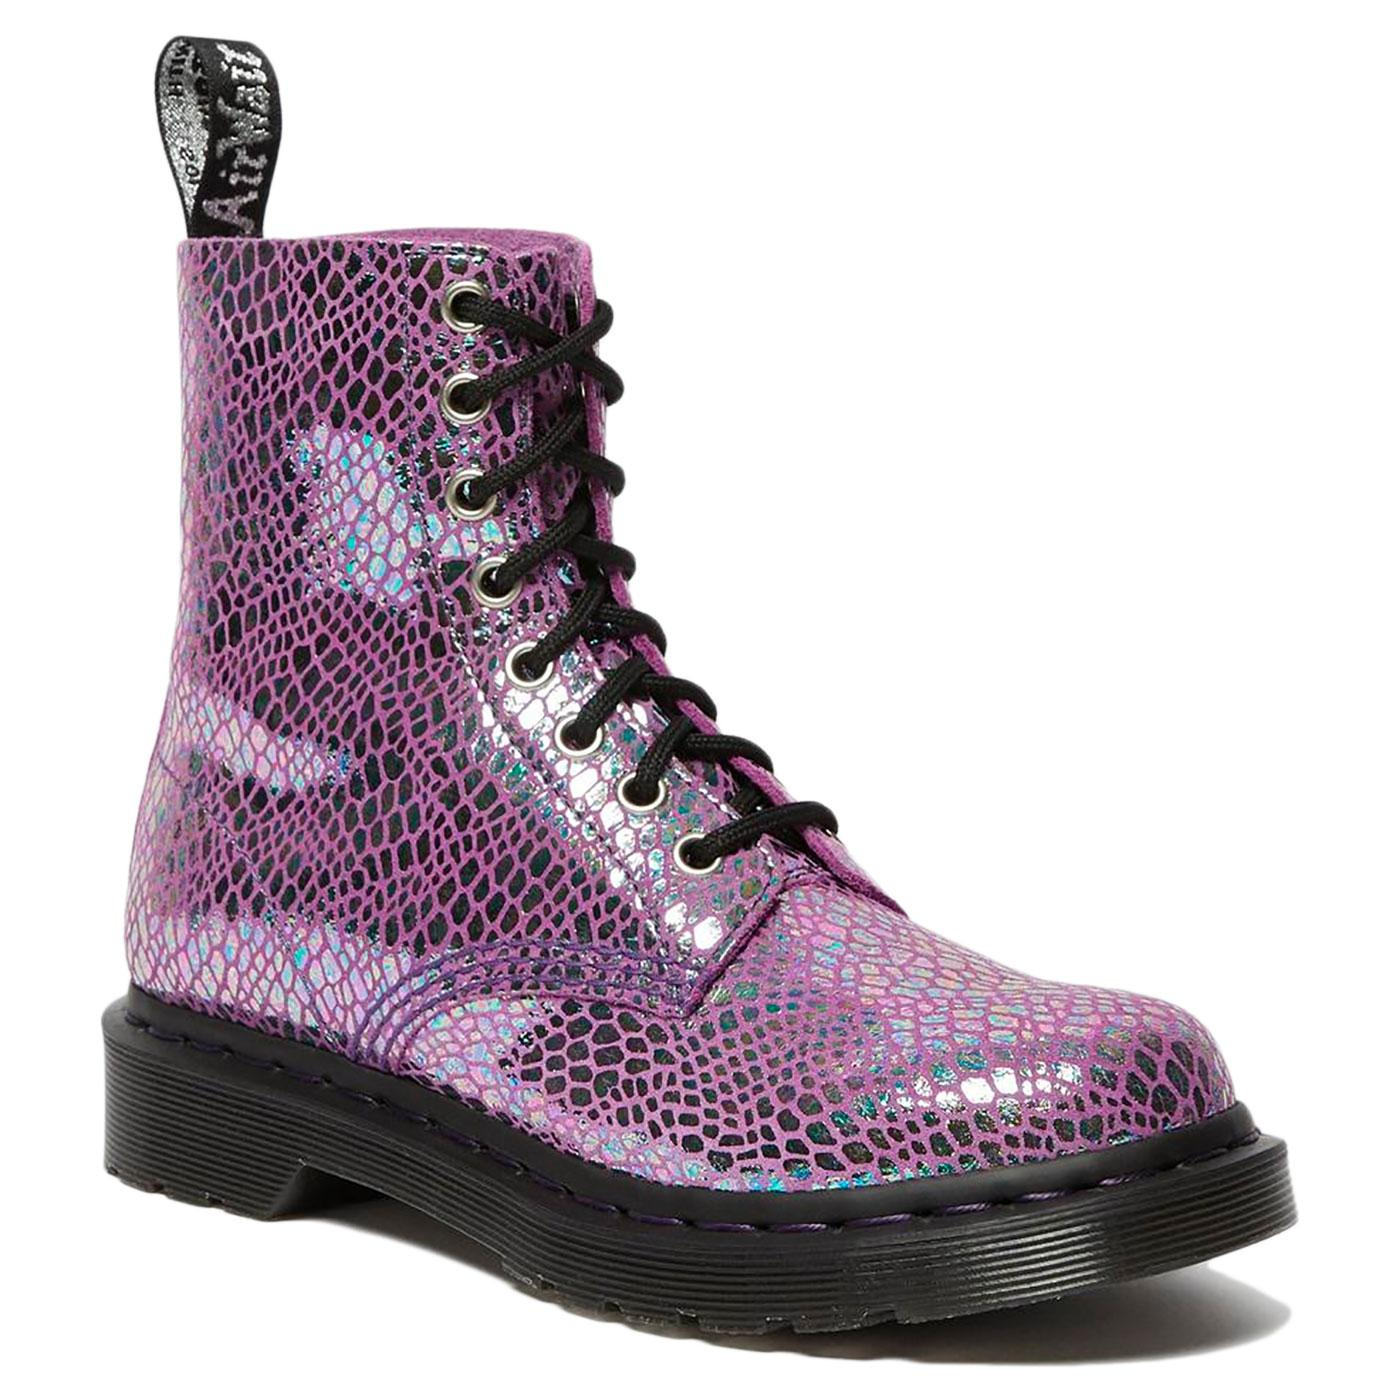 1460 Pascal DR MARTENS Snake Metallic Suede Boots